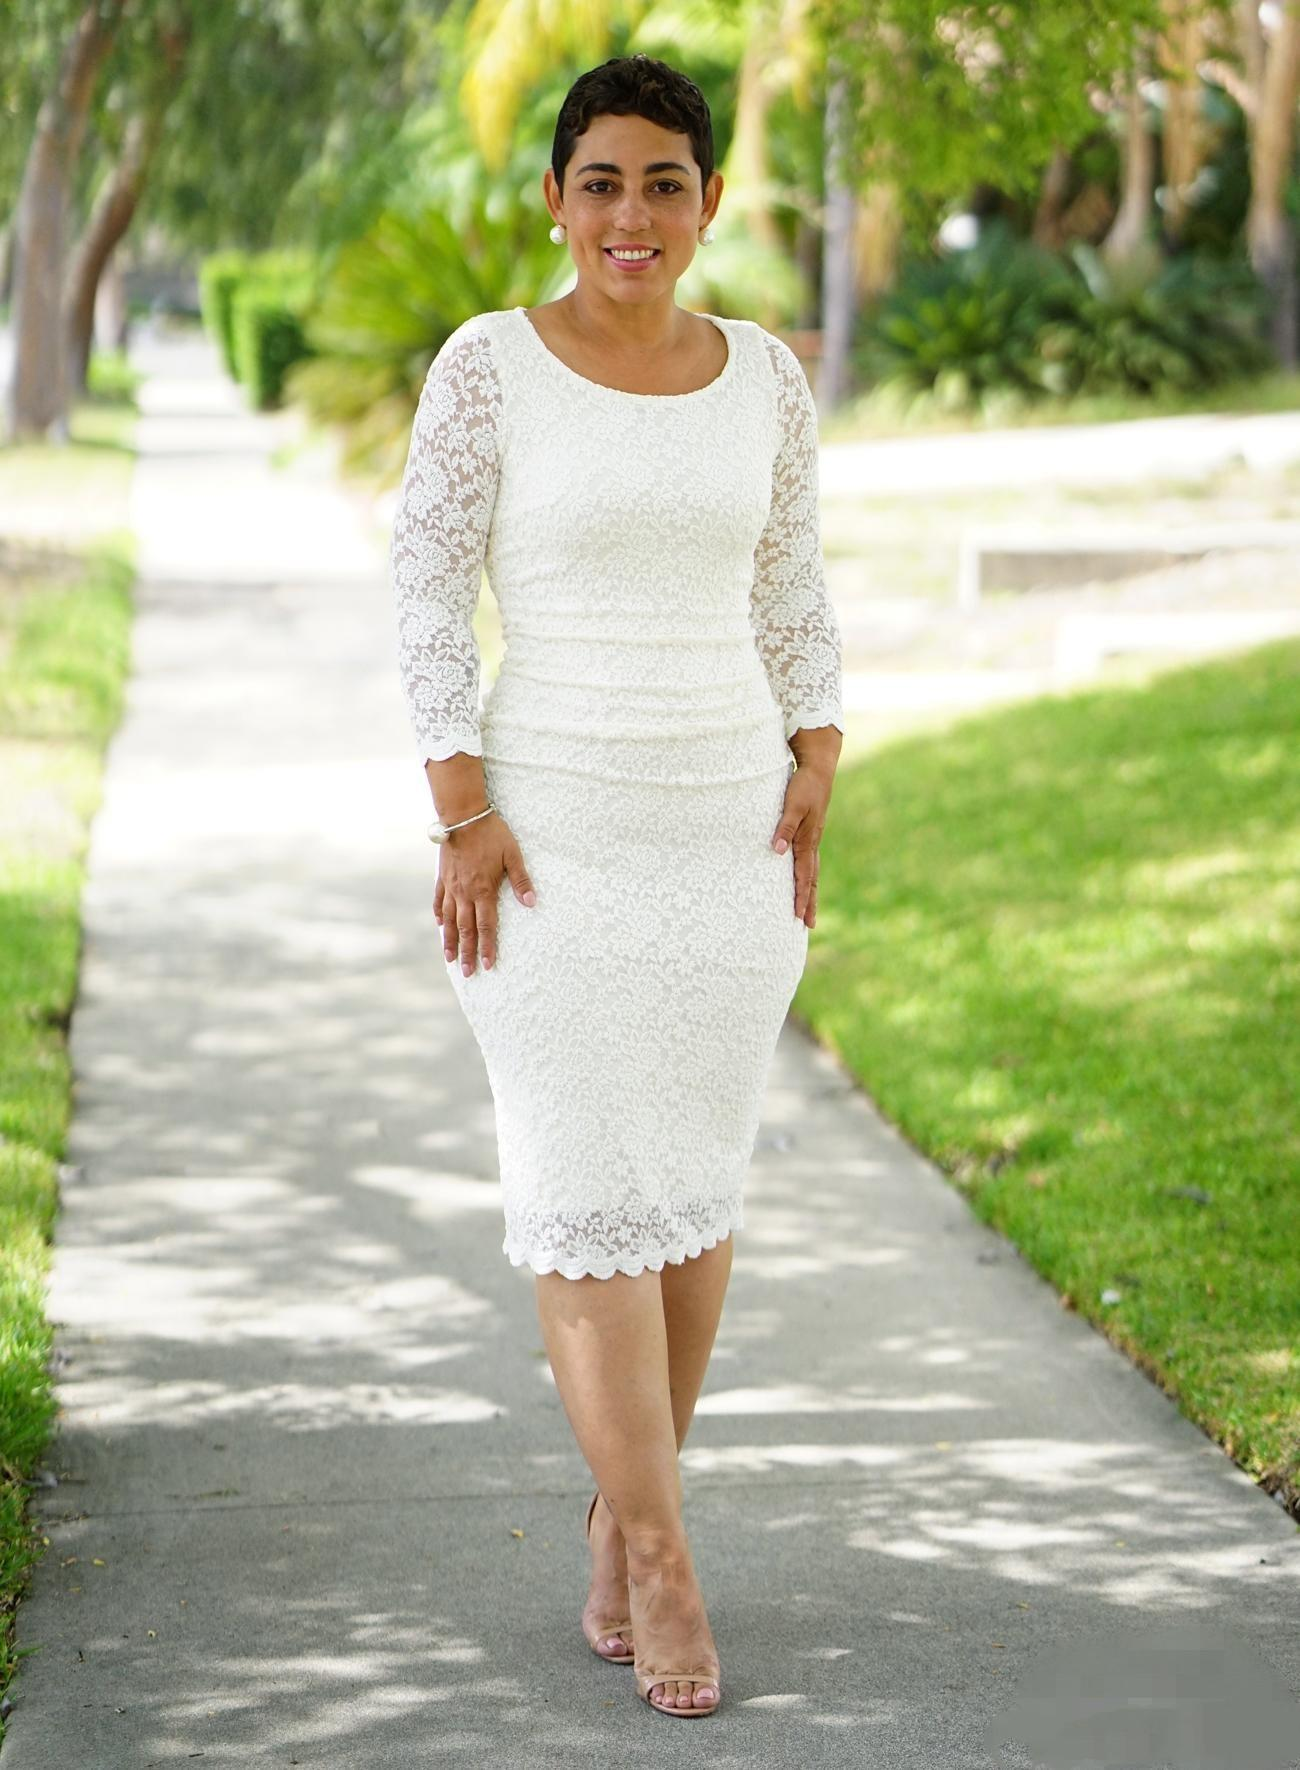 Elegant Short Full Lace Sheath Mother Of The Bride Dresses Long Sleeve Knee Length Wedding Guest Gowns Groom Mother's Formal Evening Wear